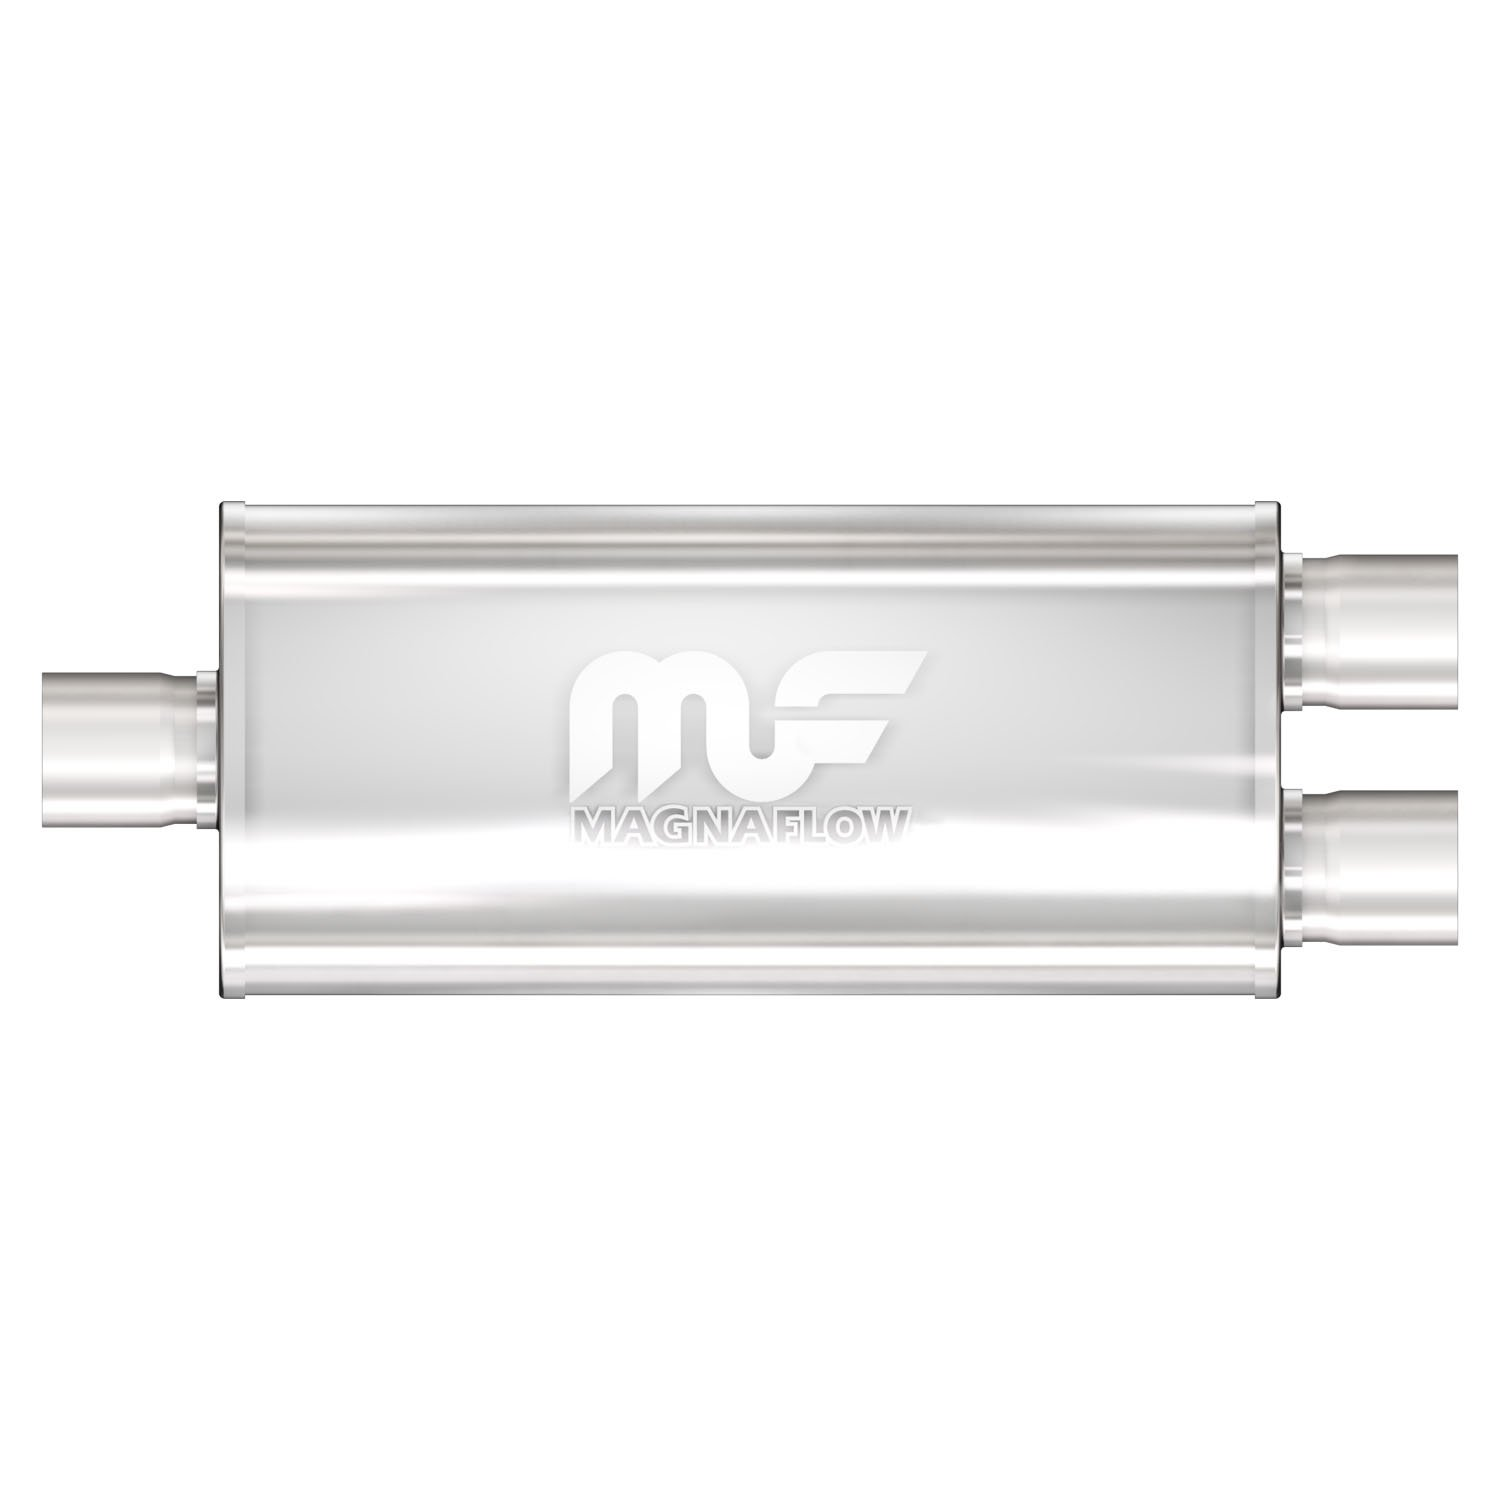 MagnaFlow 12288 Exhaust Muffler by MagnaFlow Exhaust Products